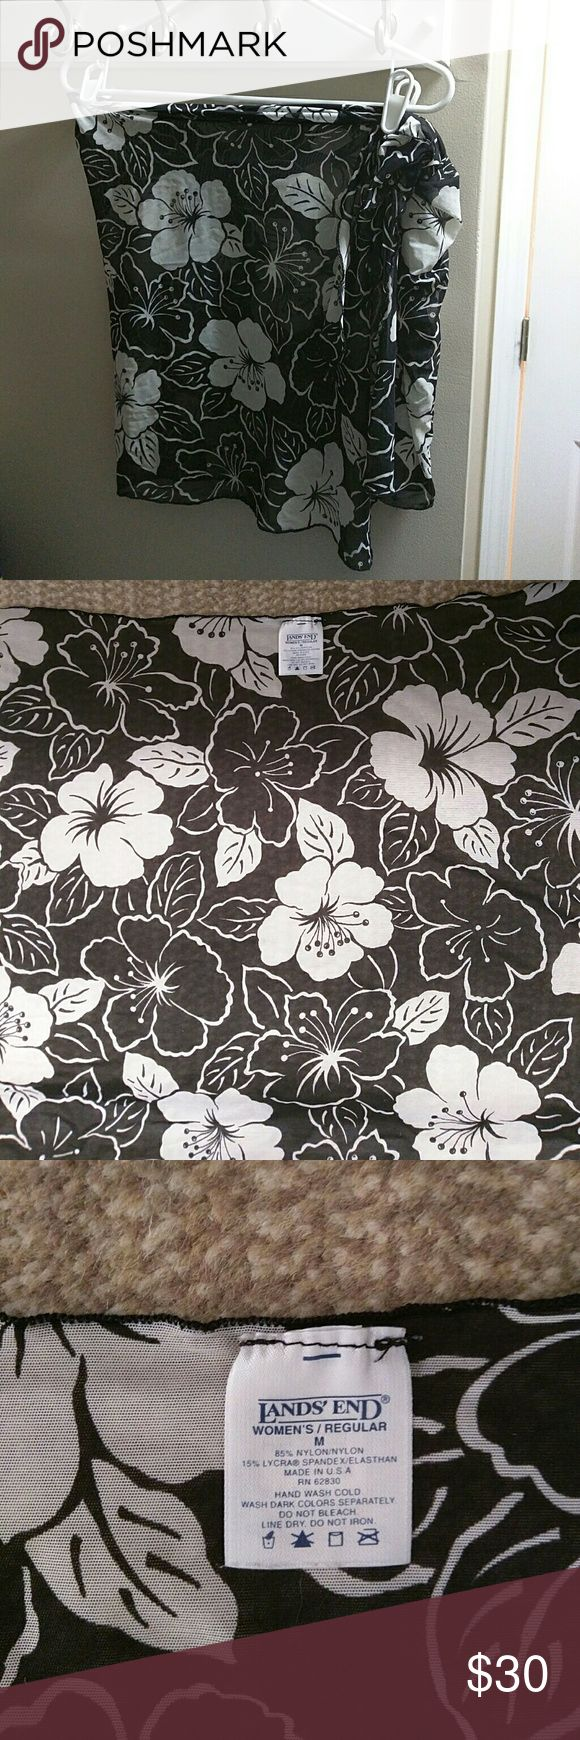 Lands' End Bathing Suit Wrap Classy Lands' End black and white sheer Hawaiian print bathing suit sarong / wrap perfect for vacation or summertime! Lycra, Spandex, Elasthan, Made in USA Lands' End Swim Coverups